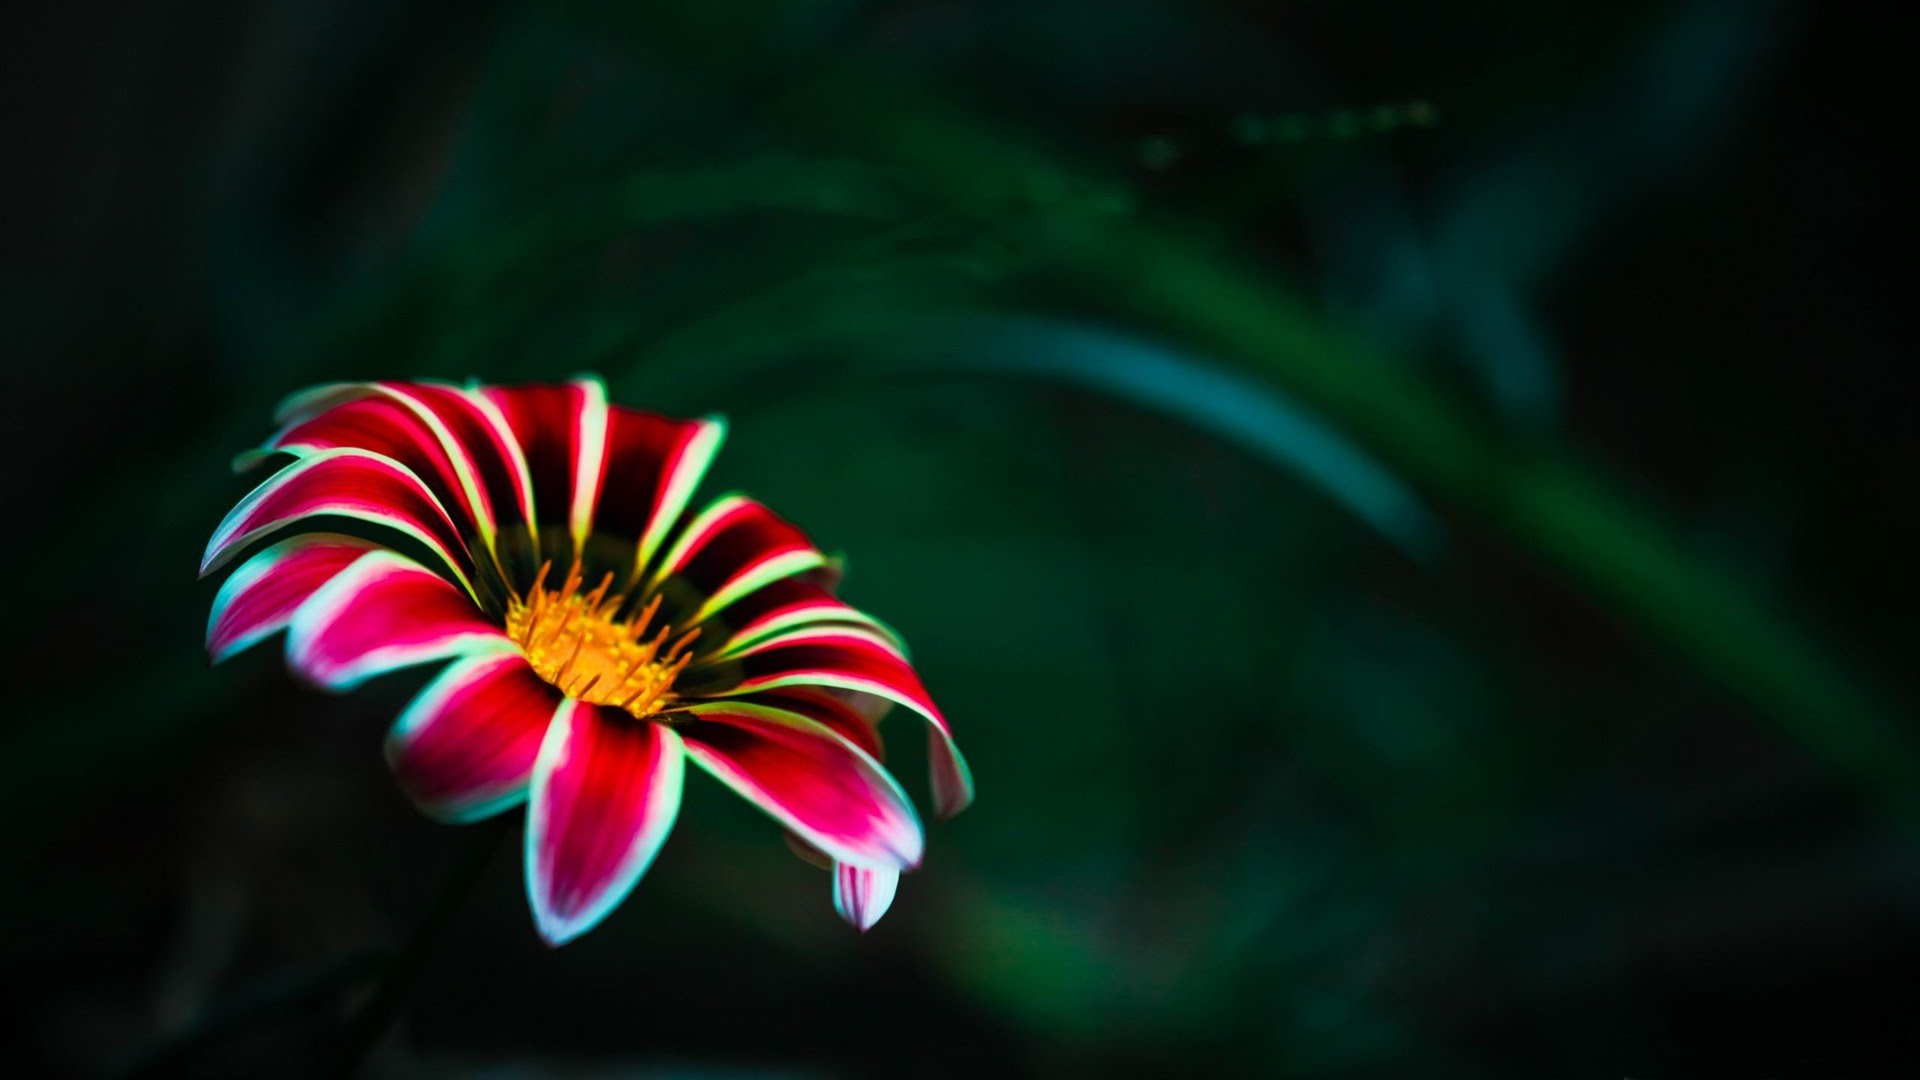 Bright Colored Flowers wallpaper | 1920x1080 | #66301